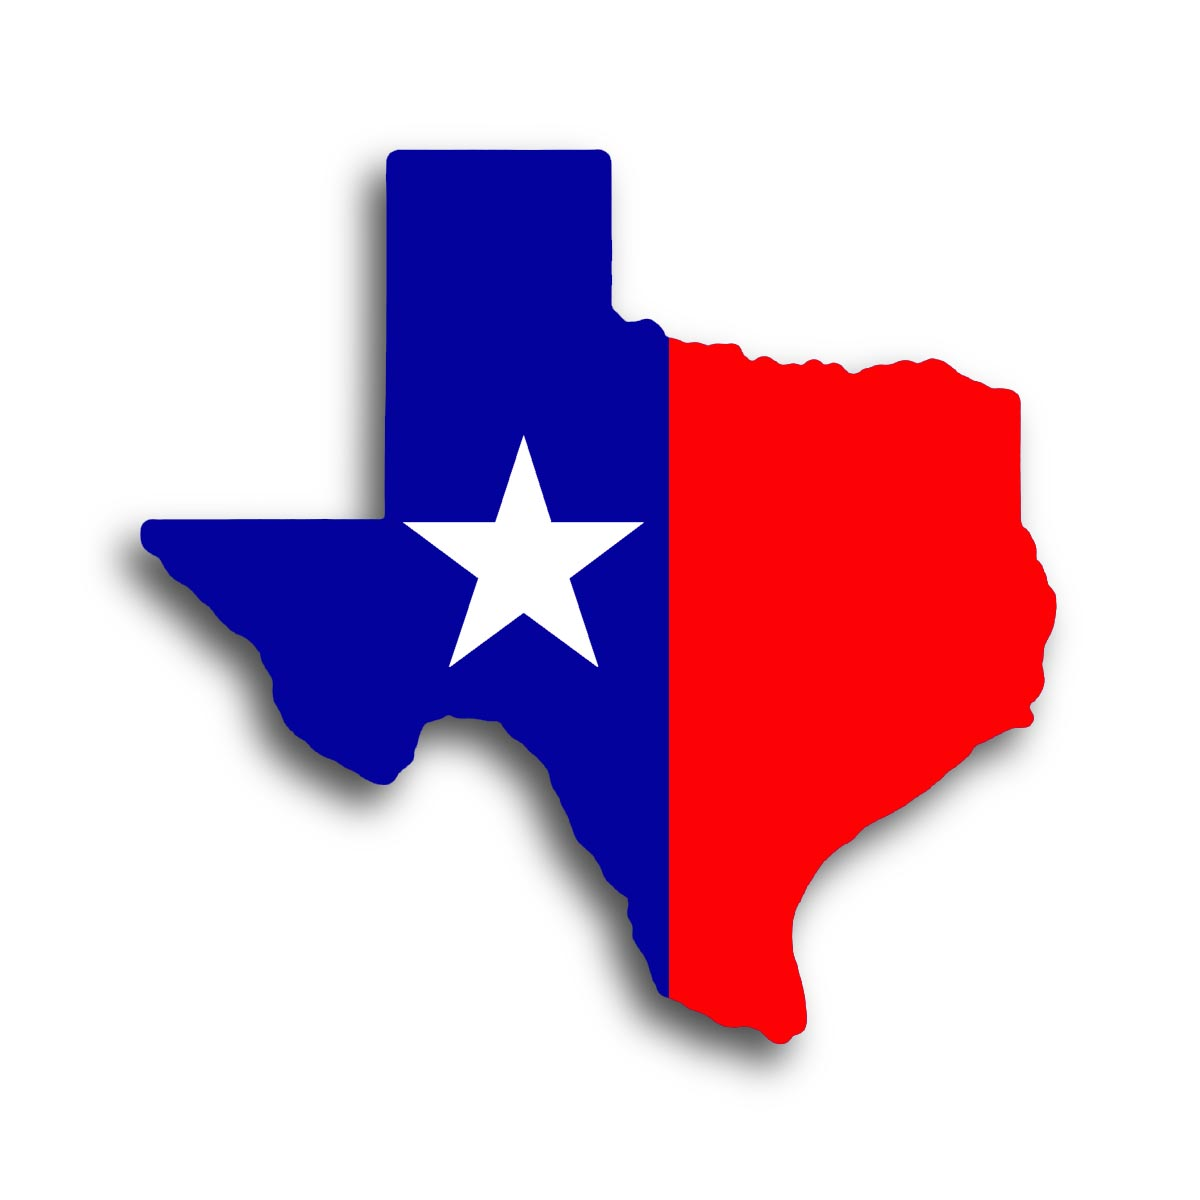 State of texas logo clip art graphic library download Texas Outline Clipart | Clipart Panda - Free Clipart Images graphic library download